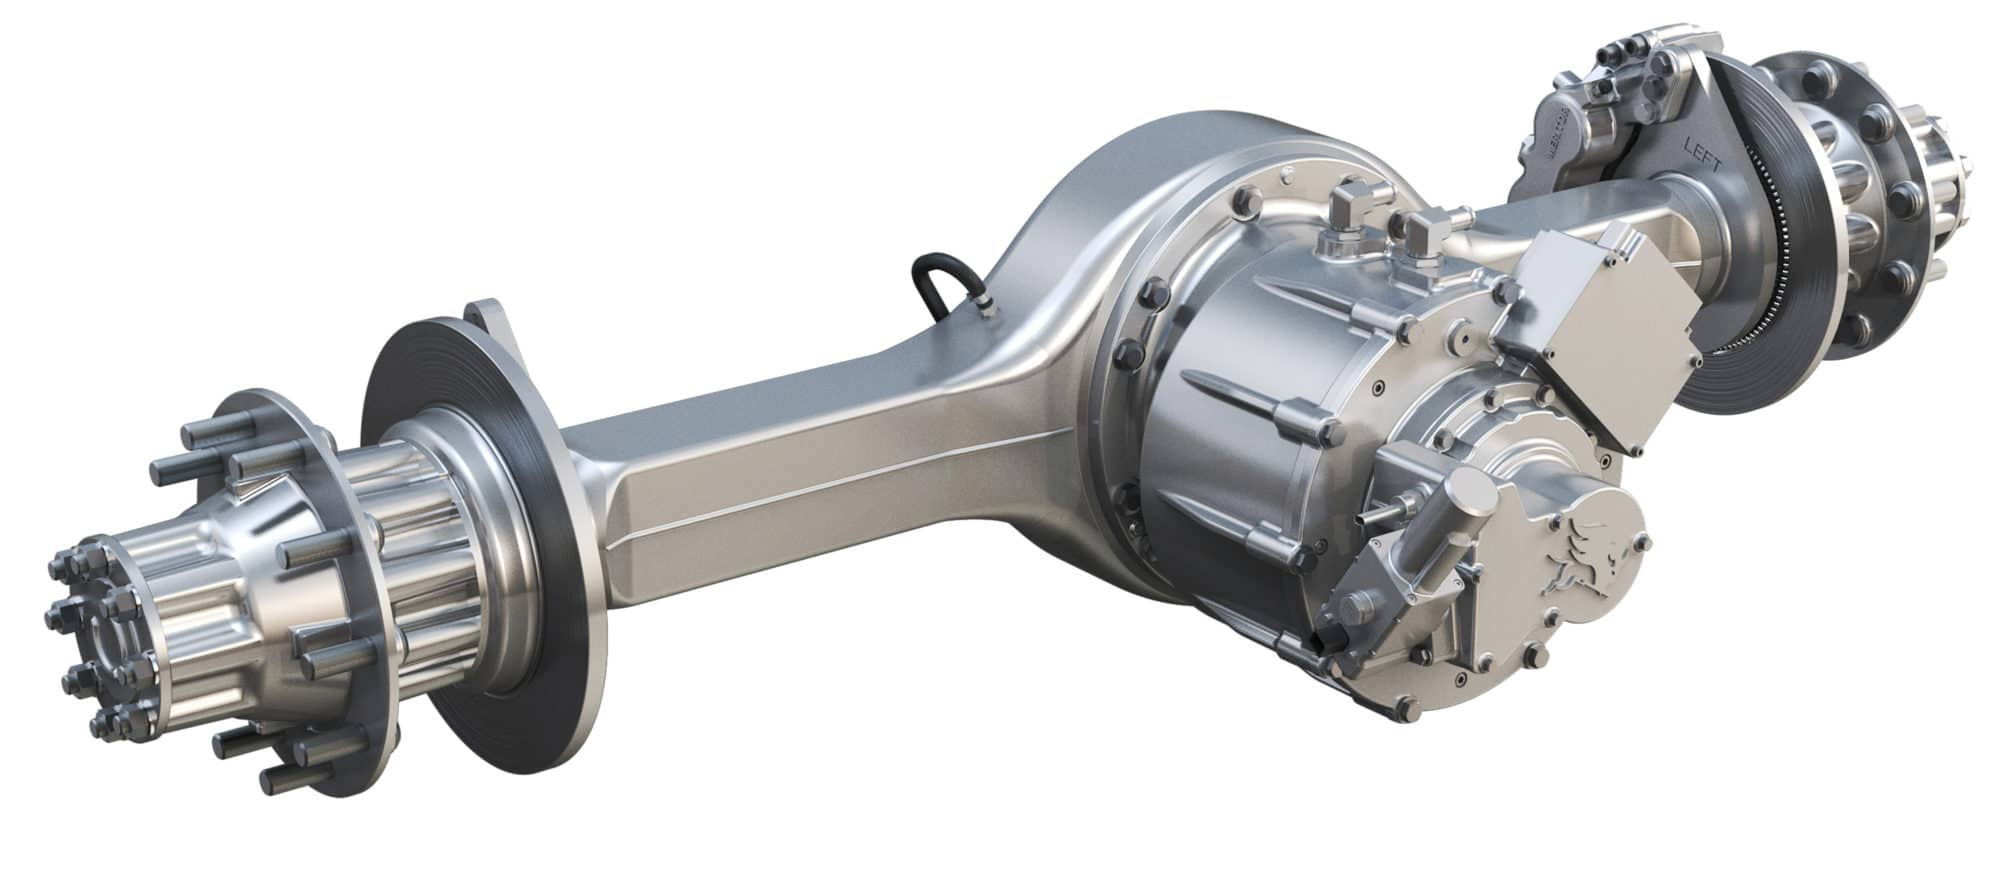 hight resolution of using a traditional axle housing with a motor mounted where the carrier and driveshaft input would normally go is an easy and economical first step toward